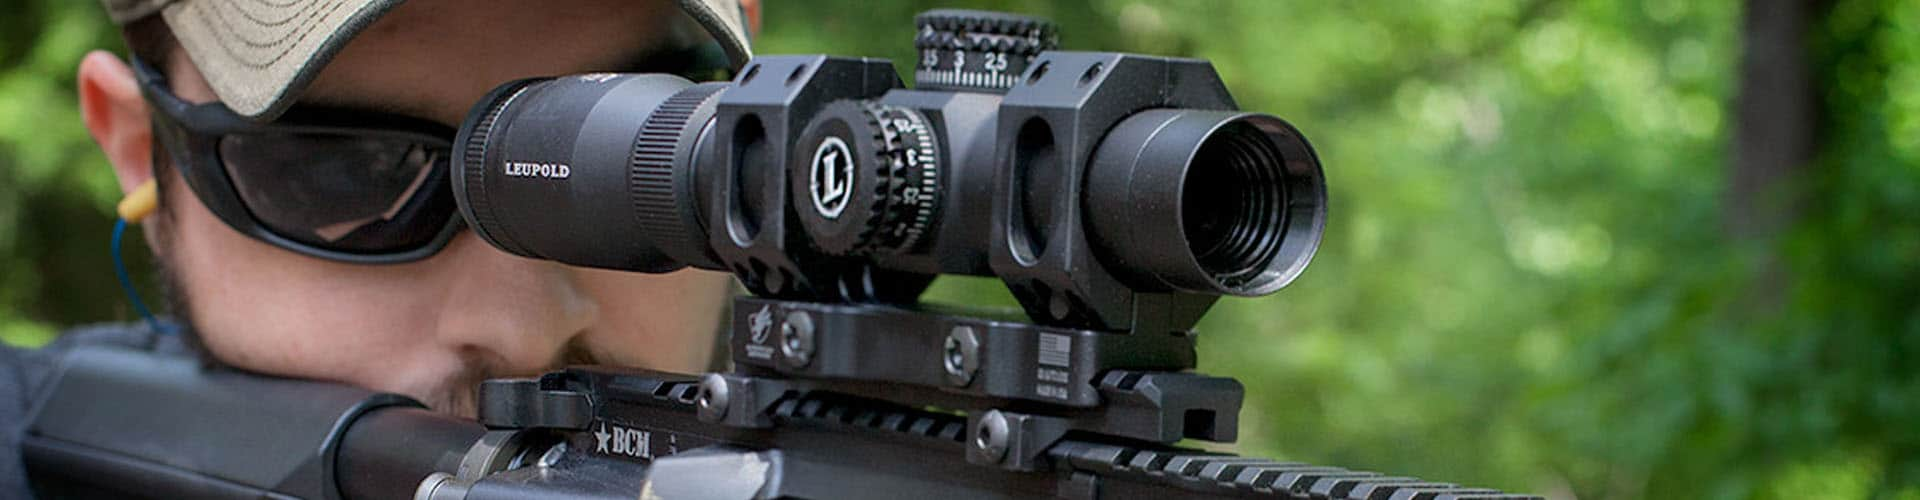 Vortex vs Leupold Scopes